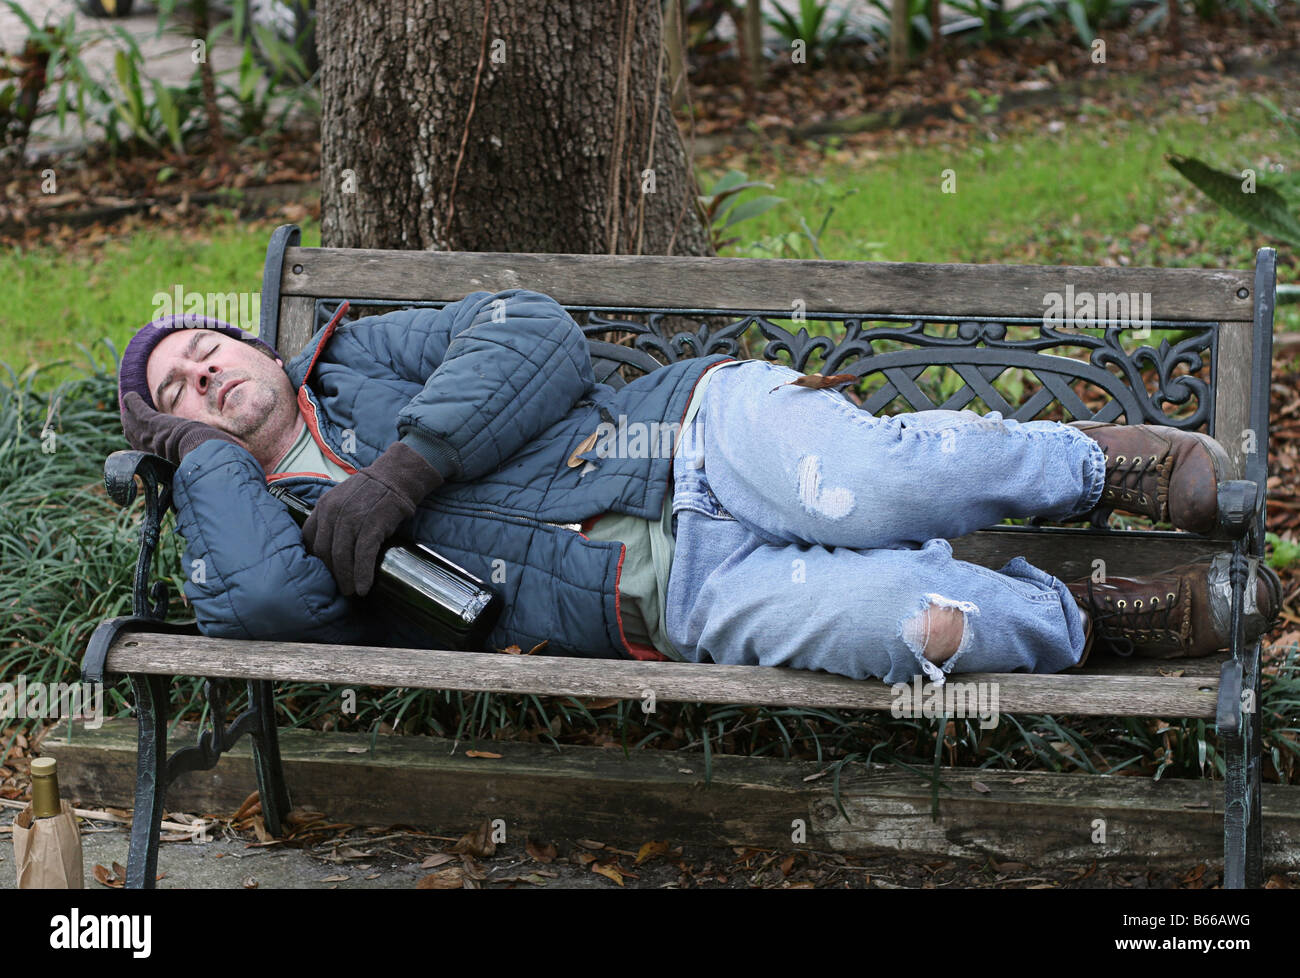 A Full View Of A Homeless Man Asleep On A Park Bench With His Wine